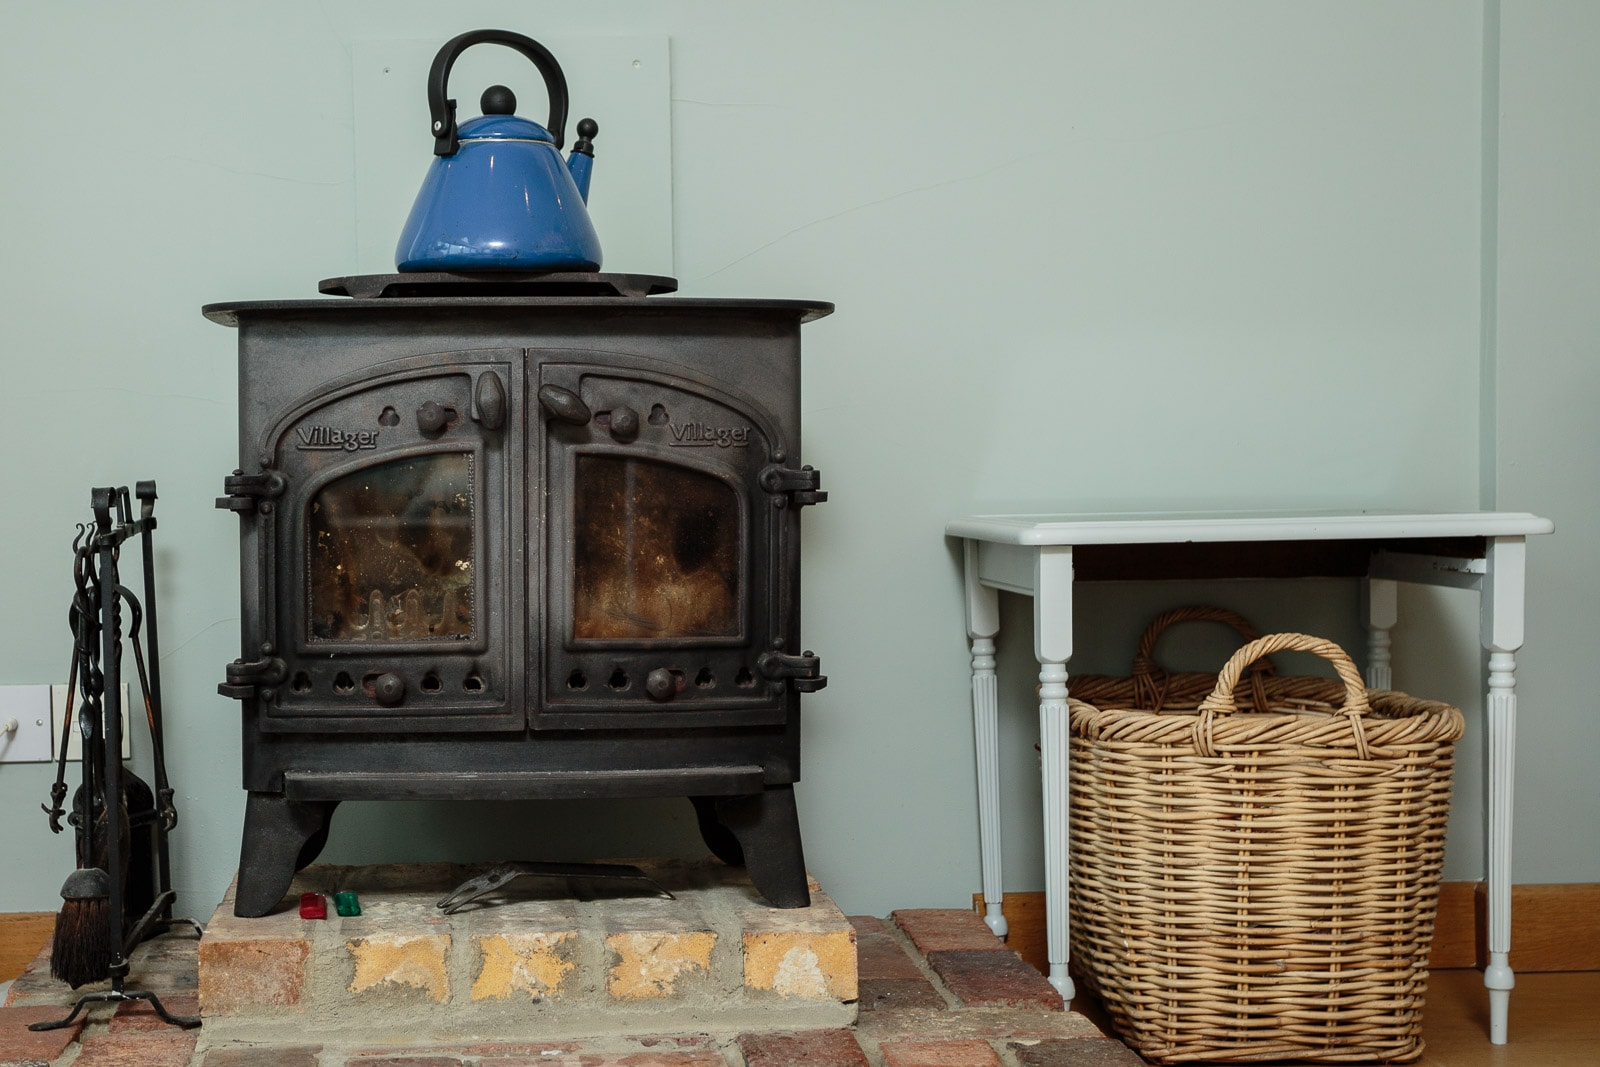 Victorian wood burner and blue kettle, log basket and tools